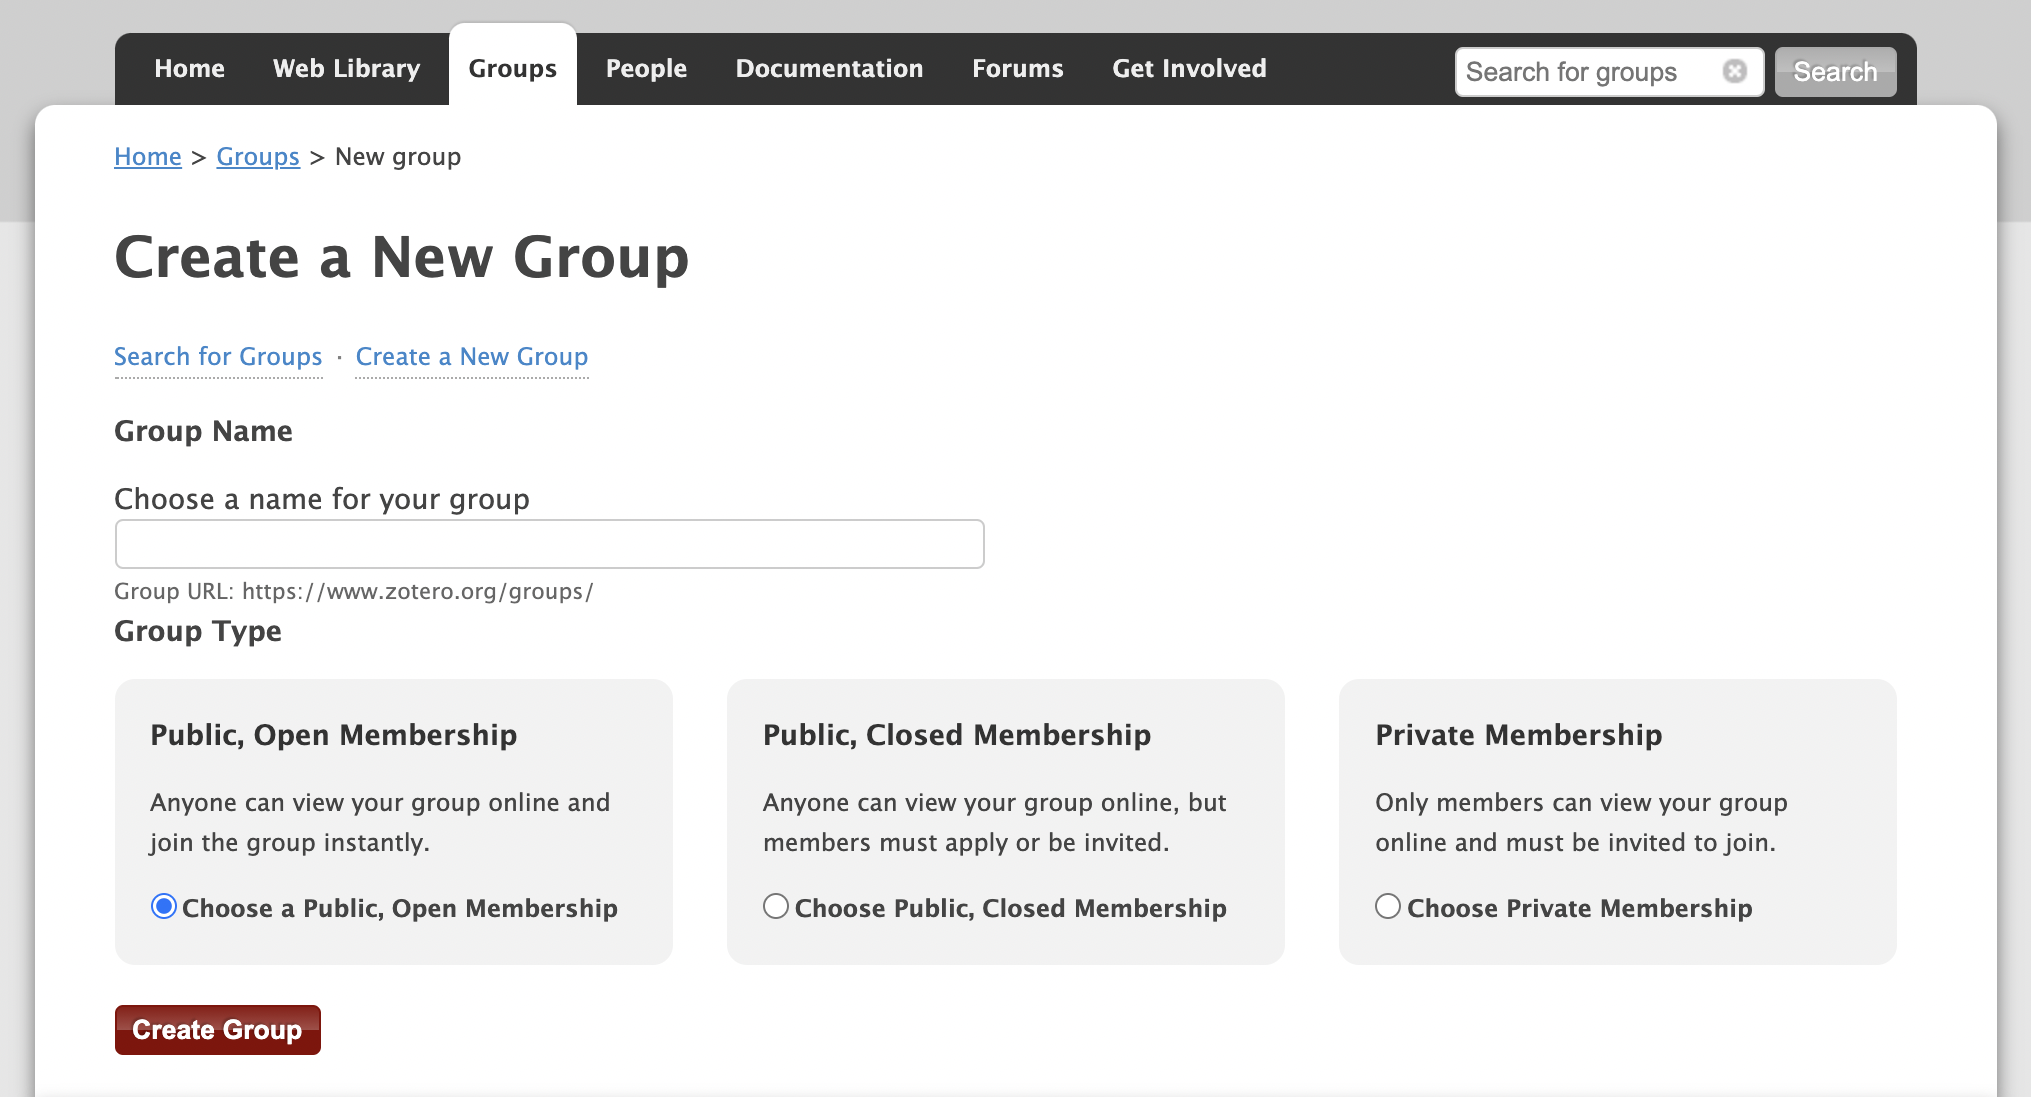 Create a New Group Webpage